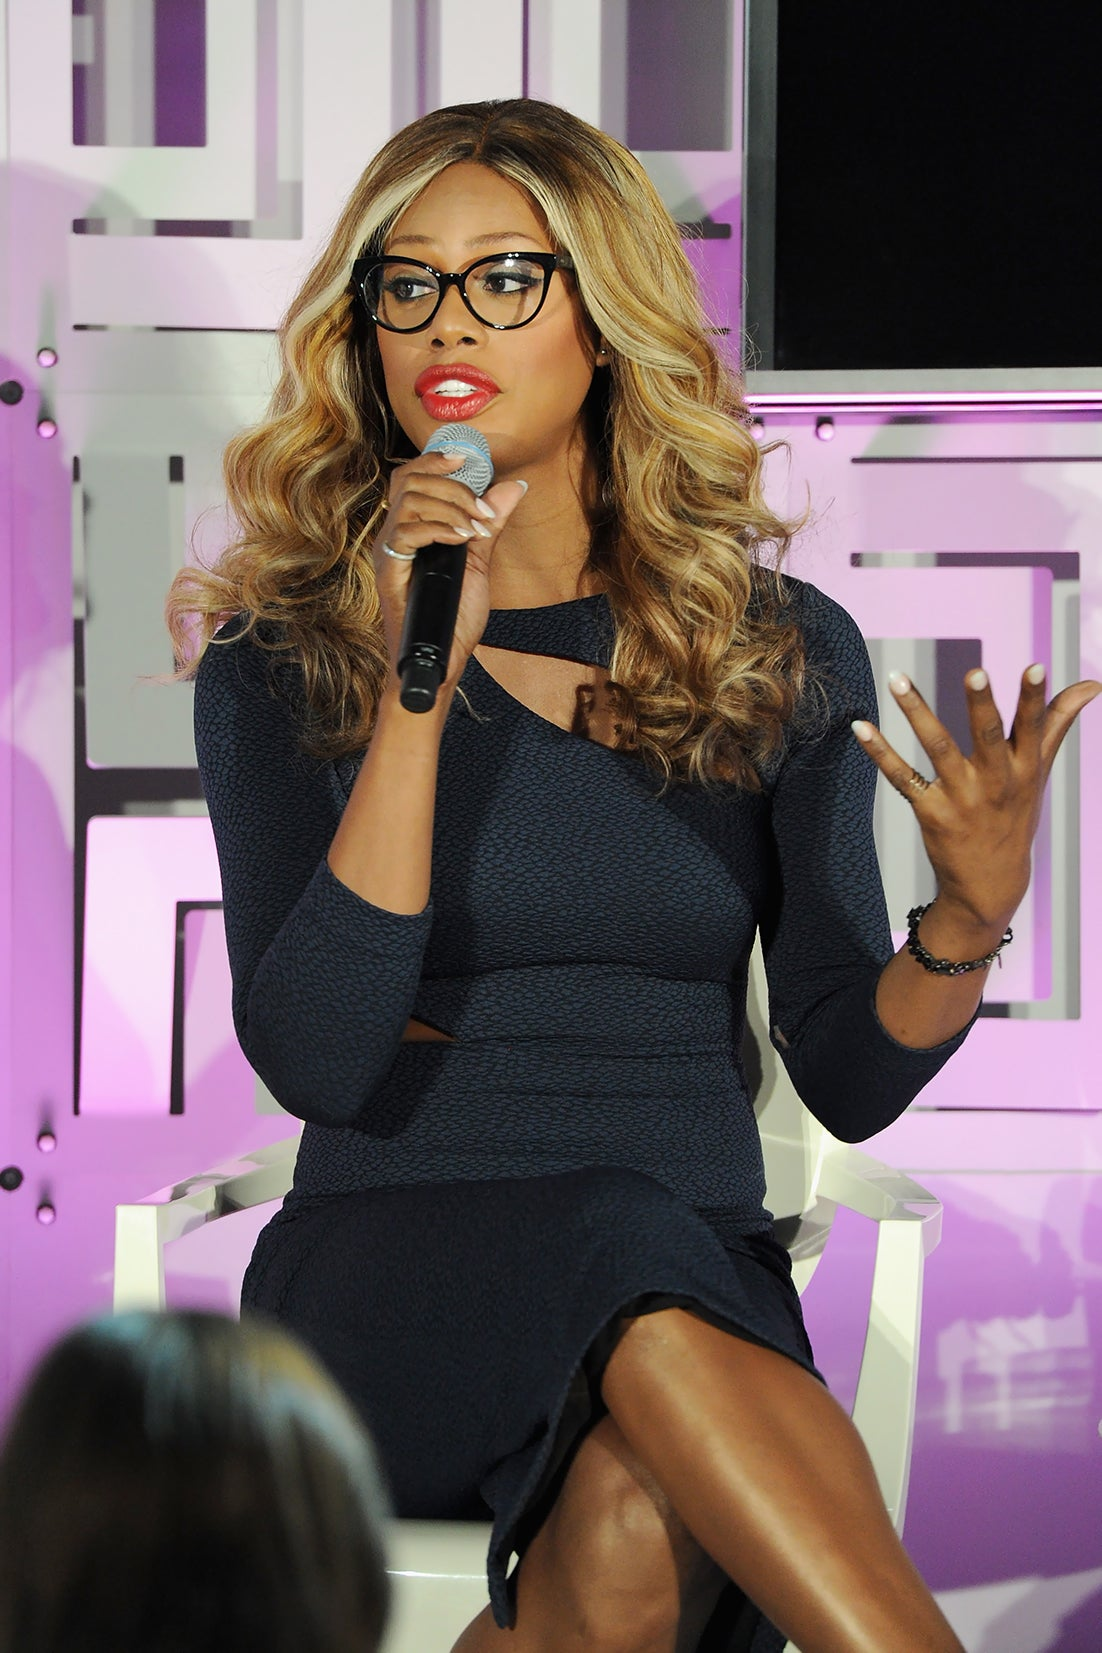 Public Administration Essay Laverne Cox Pens Much Needed Essay To Explain Importance Of Trans Bathroom  Case Hunters In The Snow Essay also National Flag Of India Essay Laverne Cox Instyle Essay On Transgender Bathroom Case  Essence Essay On Kumbh Mela